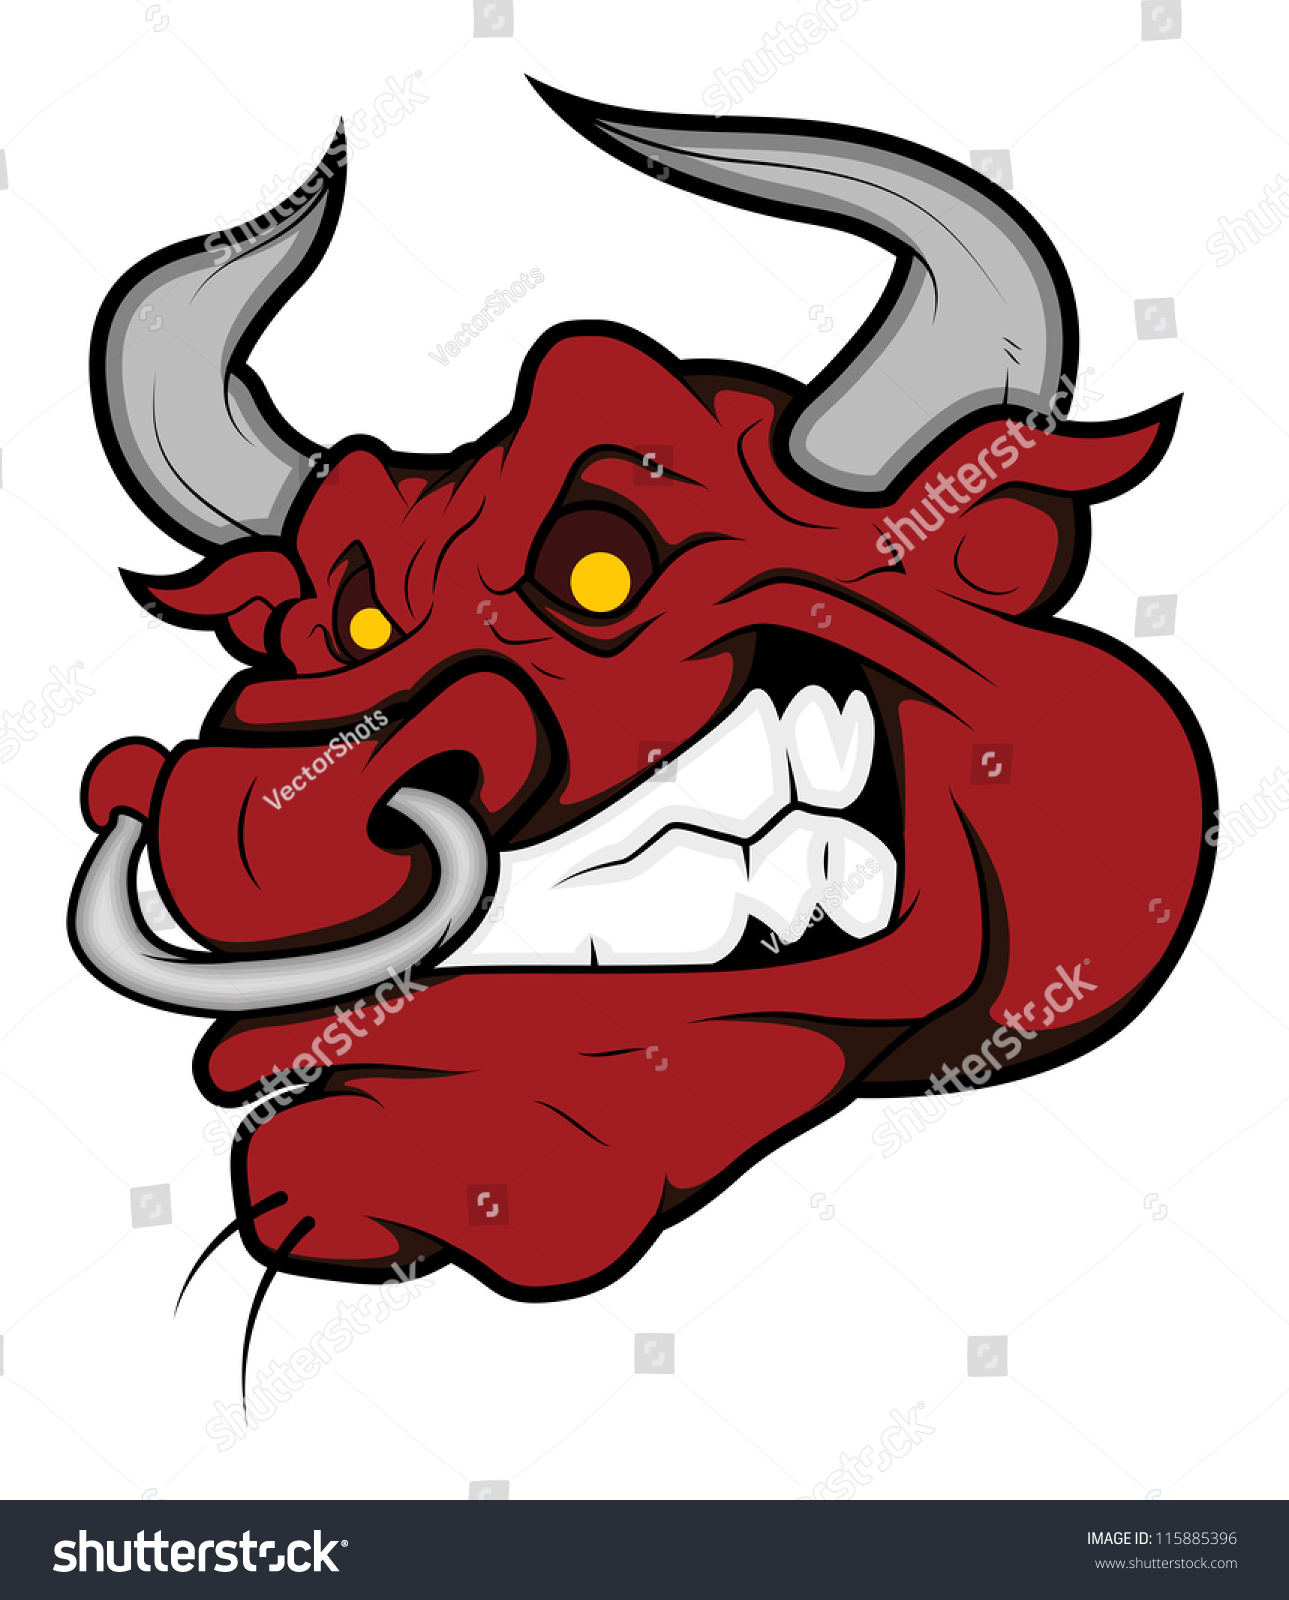 angry bull head logo - photo #31